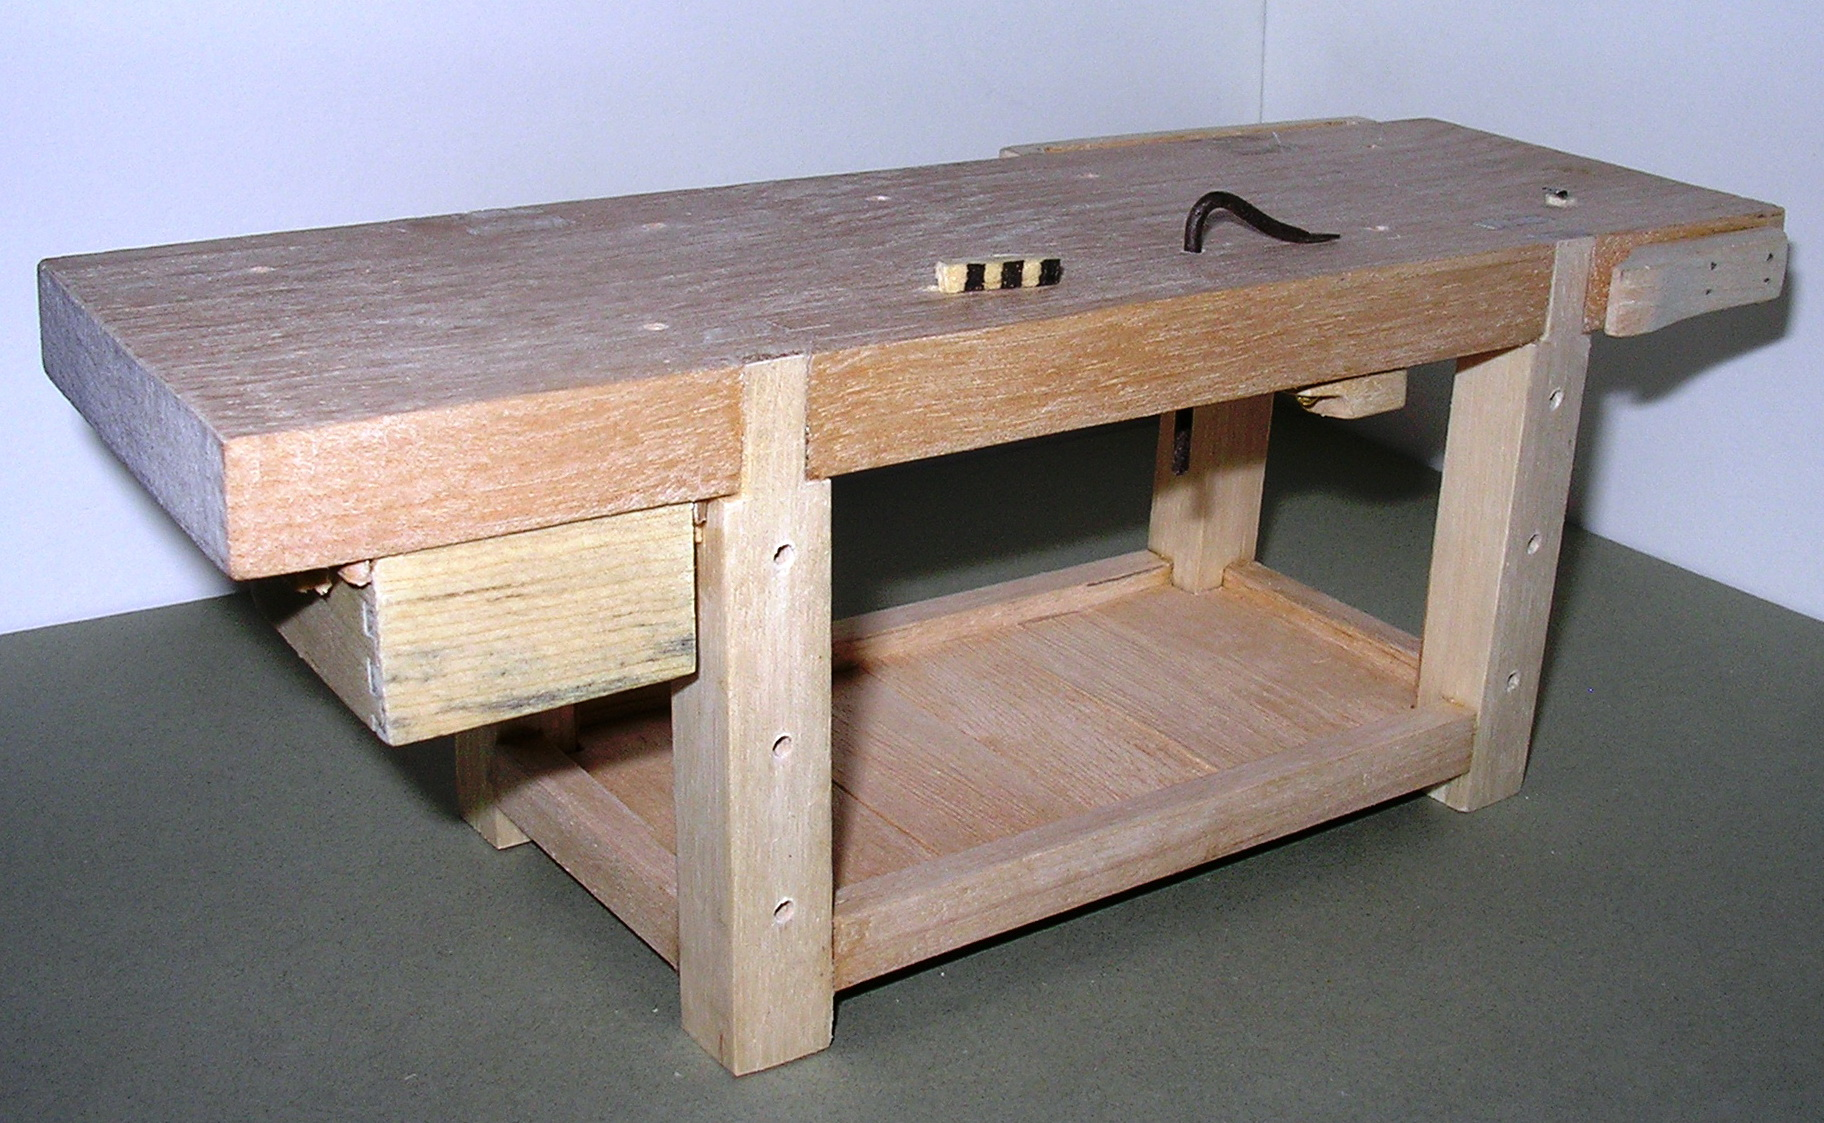 woodworking bench sale - 28 images - how to build a ...